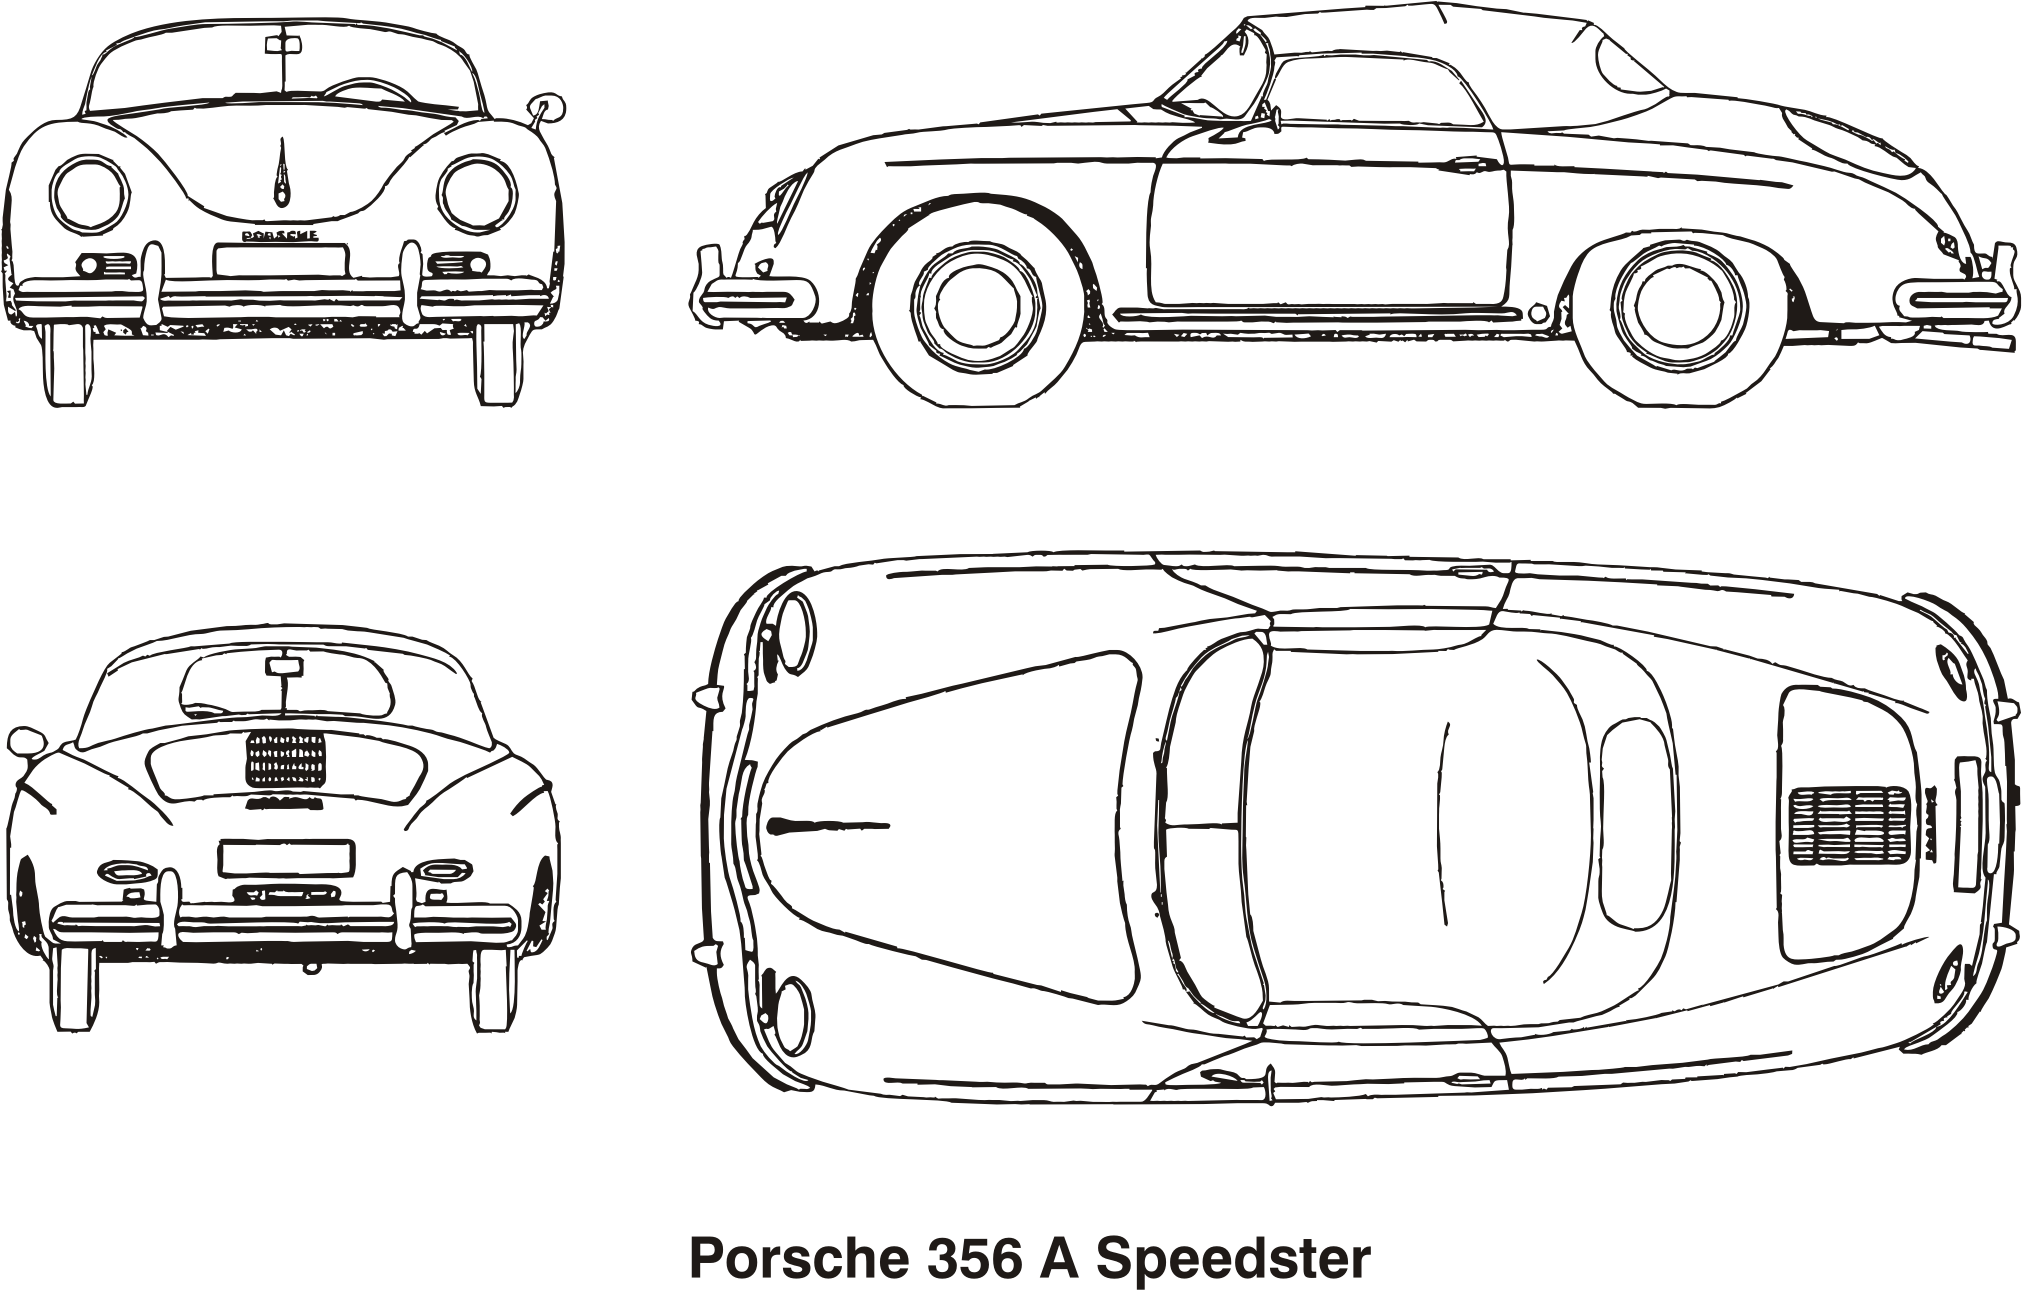 Porsche 356 A Speedster, year 1958 by Vanja